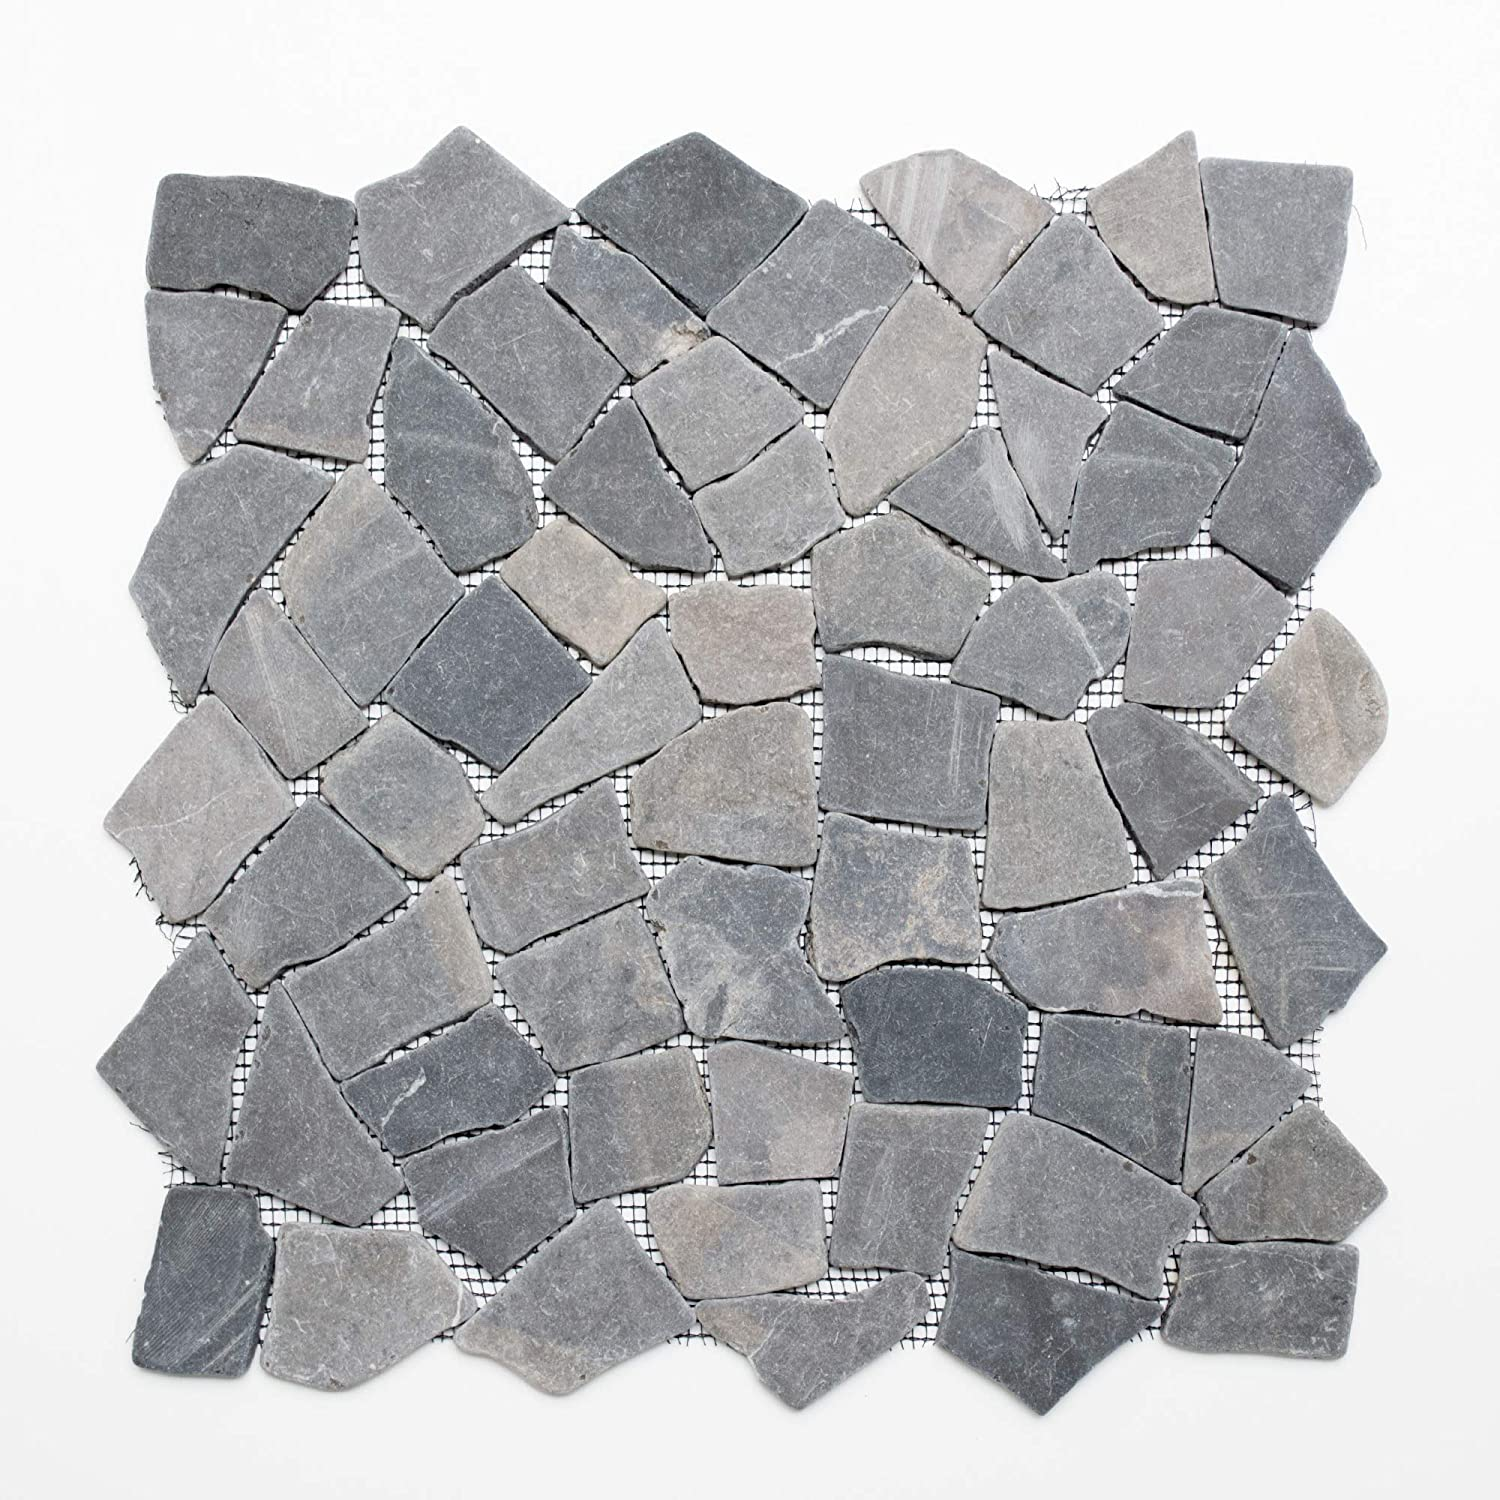 Tiles mosaic glass mosaic tile marble grey New 8  mm # 401 123mosaikfliesen